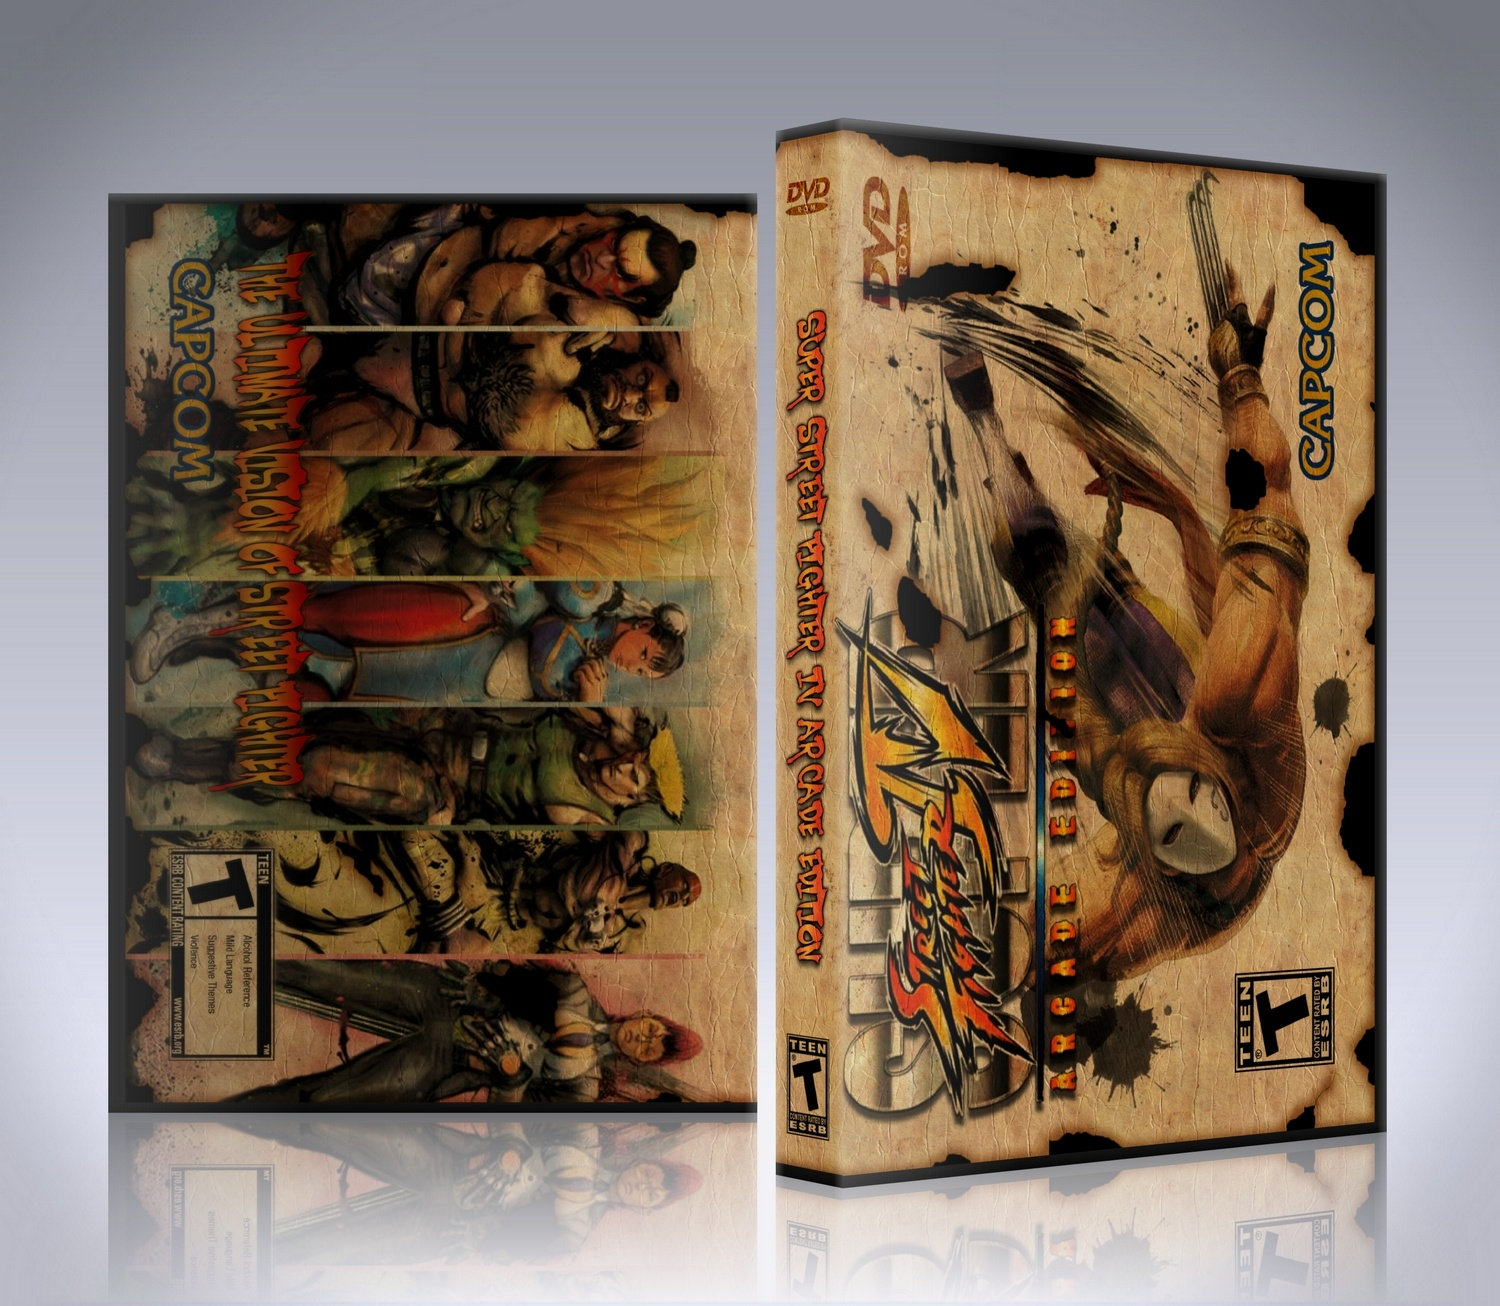 Super Street Fighter IV Arcade Edition box cover